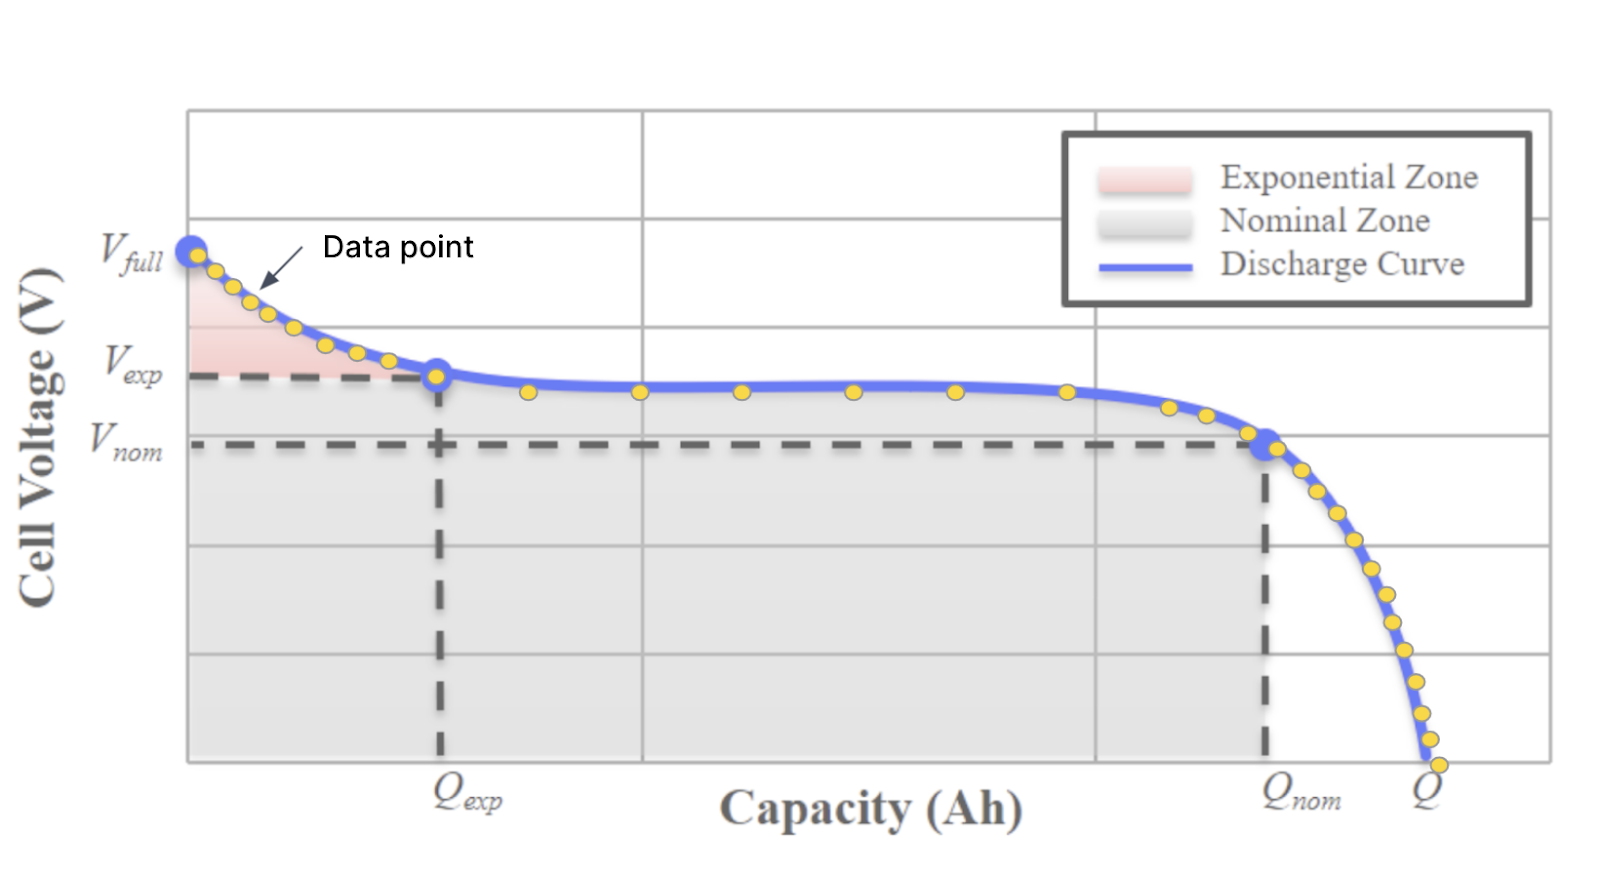 """The same battery discharge curve again, this time with data points superimposed on the image. The data points are spaced close together in the """"interesting bits,"""" where the voltage changes quickly at the beginning and end of the discharge curve. The data points are spaced further apart during the """"boring"""" part in the middle, where the voltage hardly changes at all."""